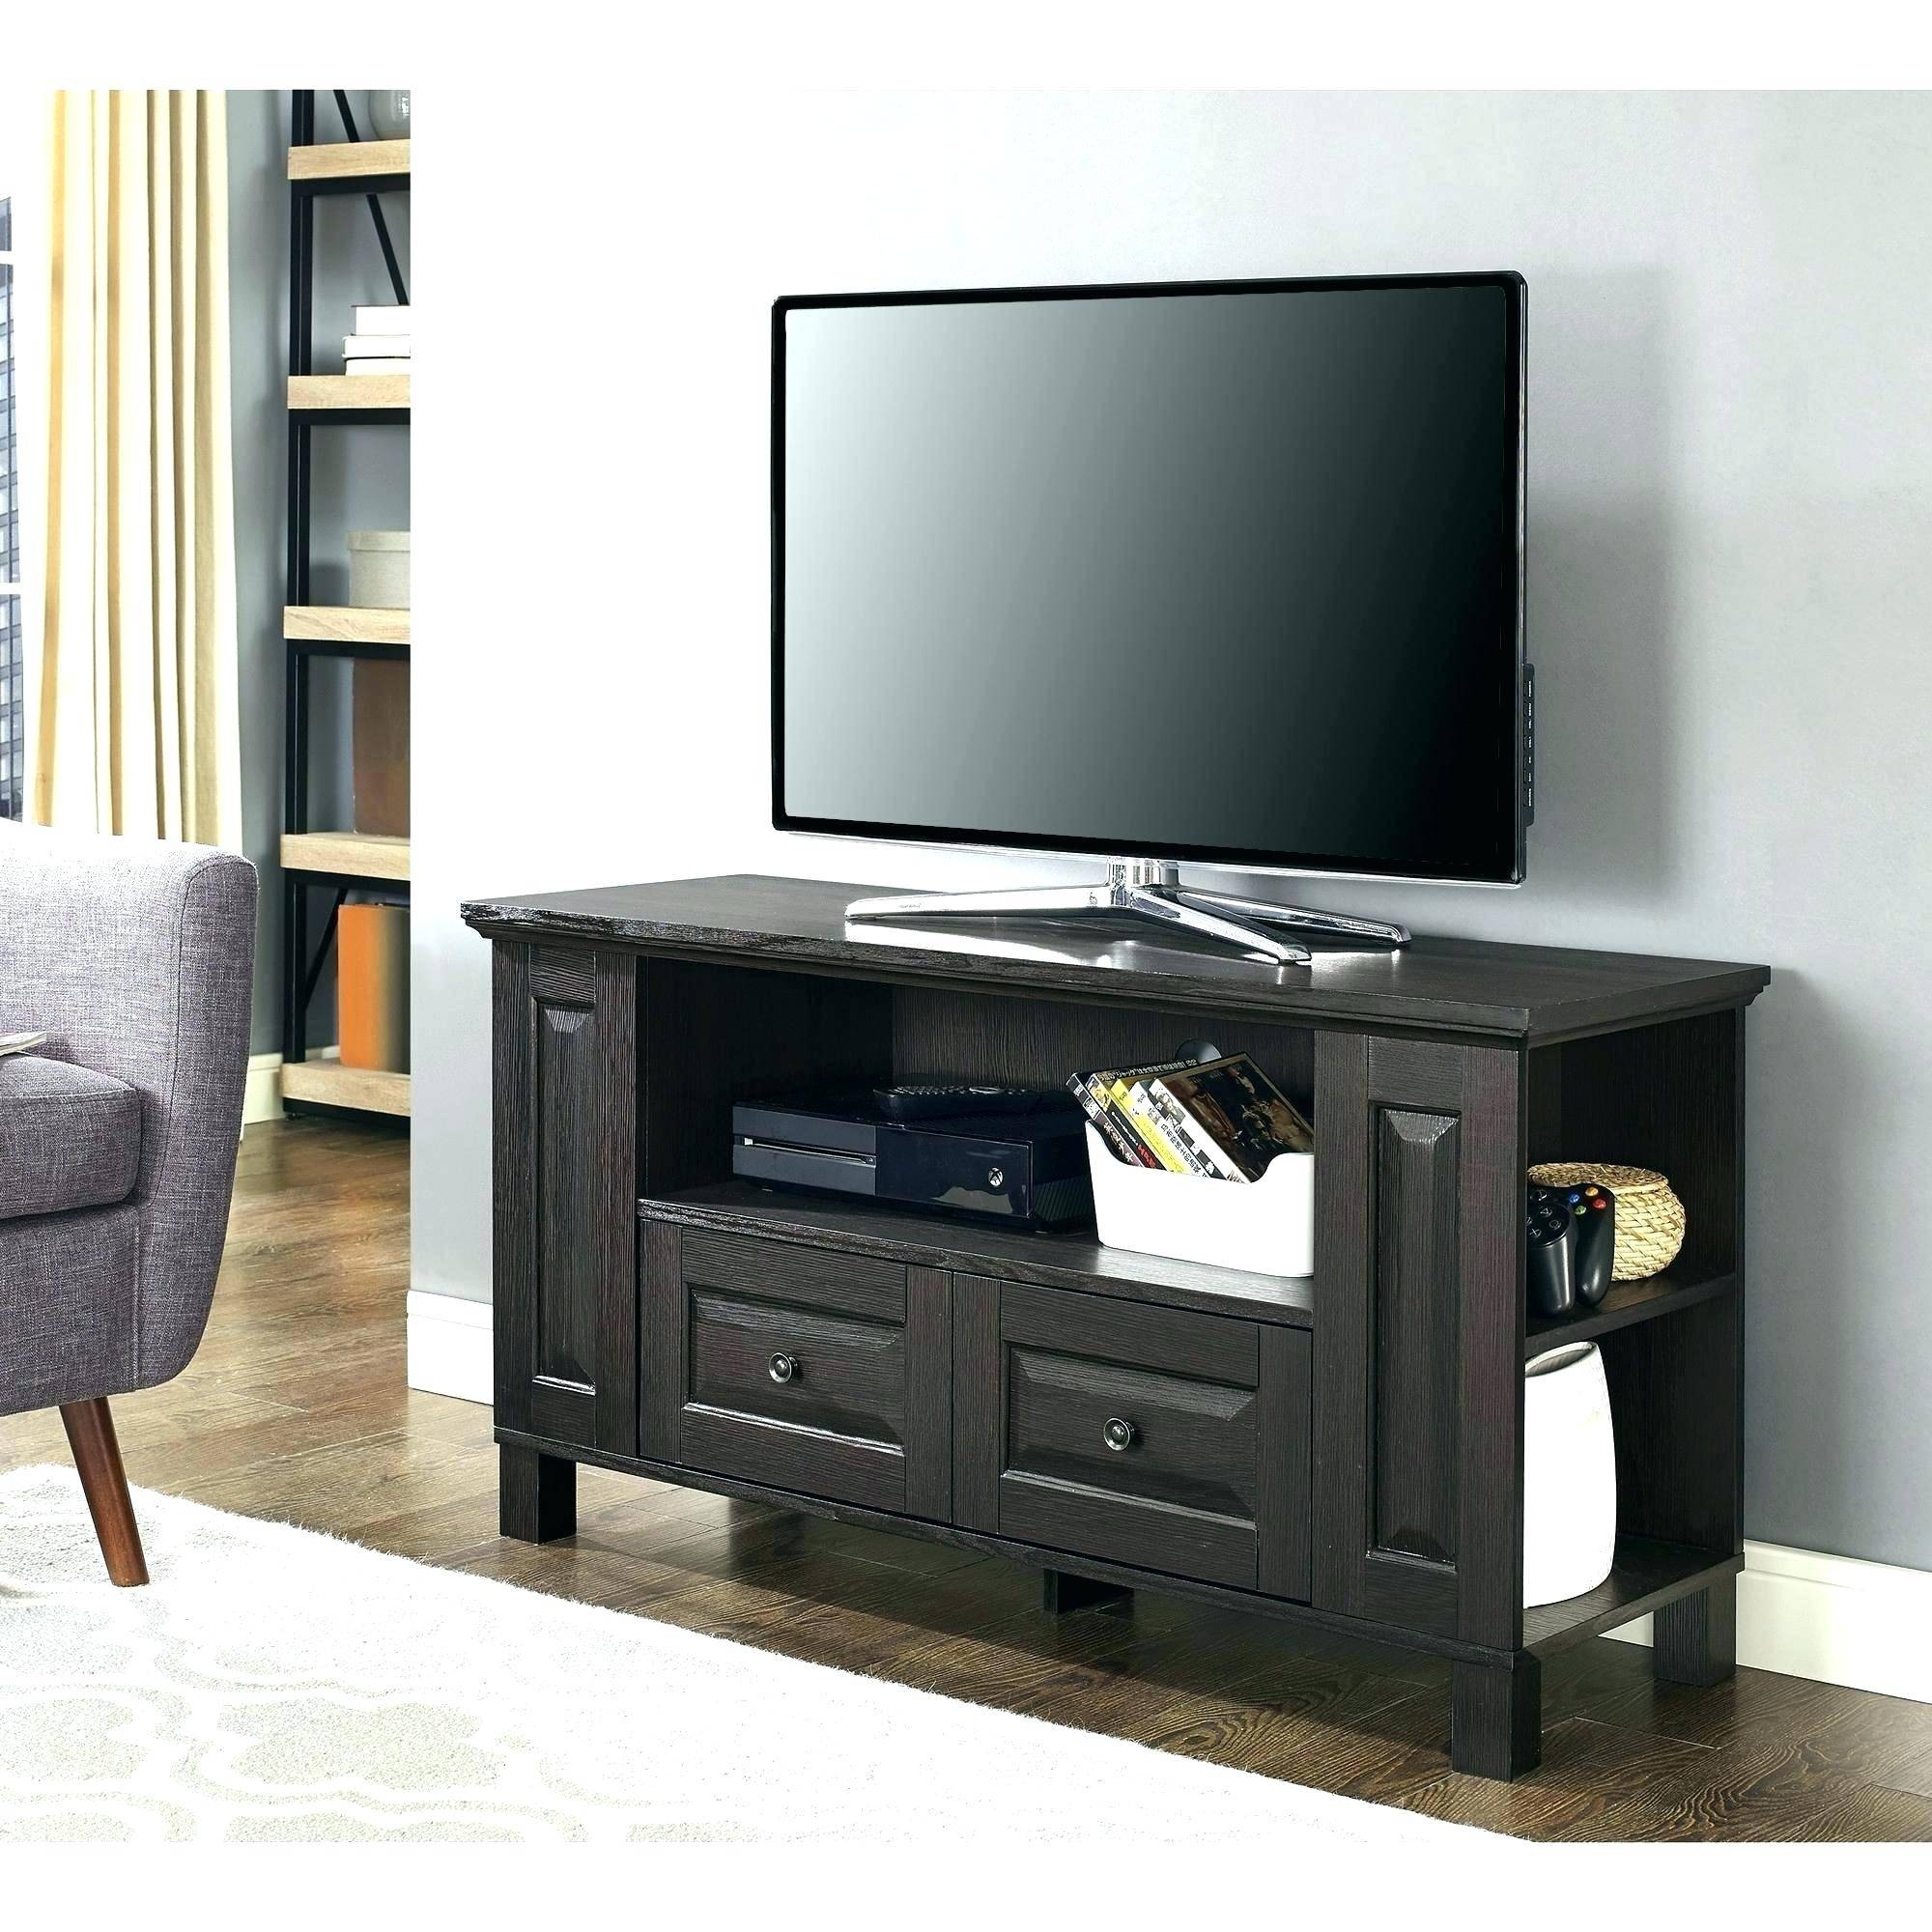 Articles With Funky Modern Tv Stands Tag: Trendy Funky Tv Stand Regarding Funky Tv Stands (View 6 of 15)